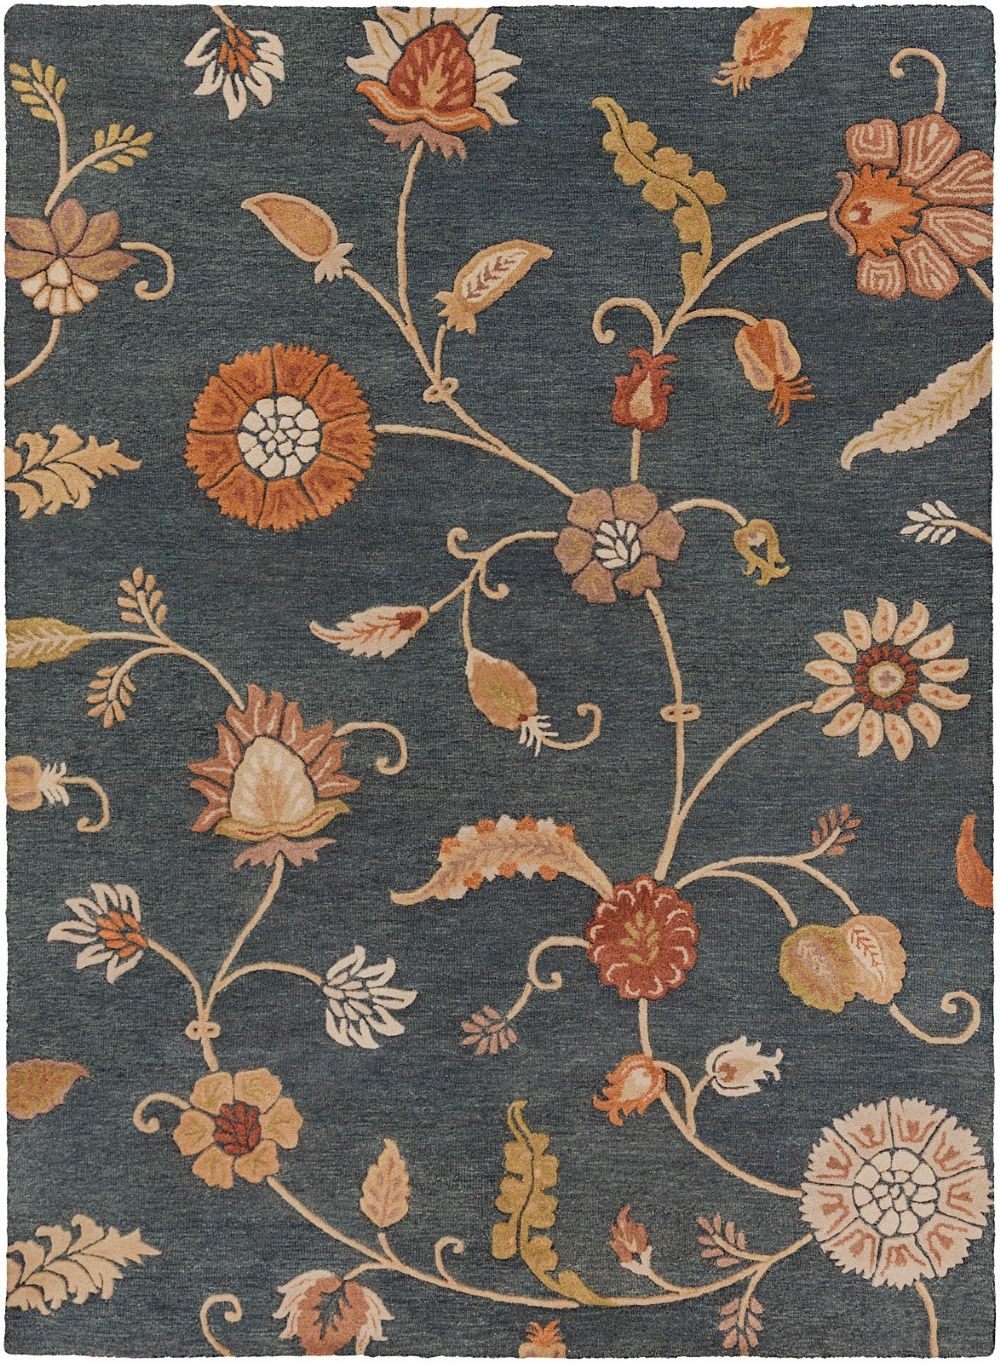 surya sprout country & floral area rug collection